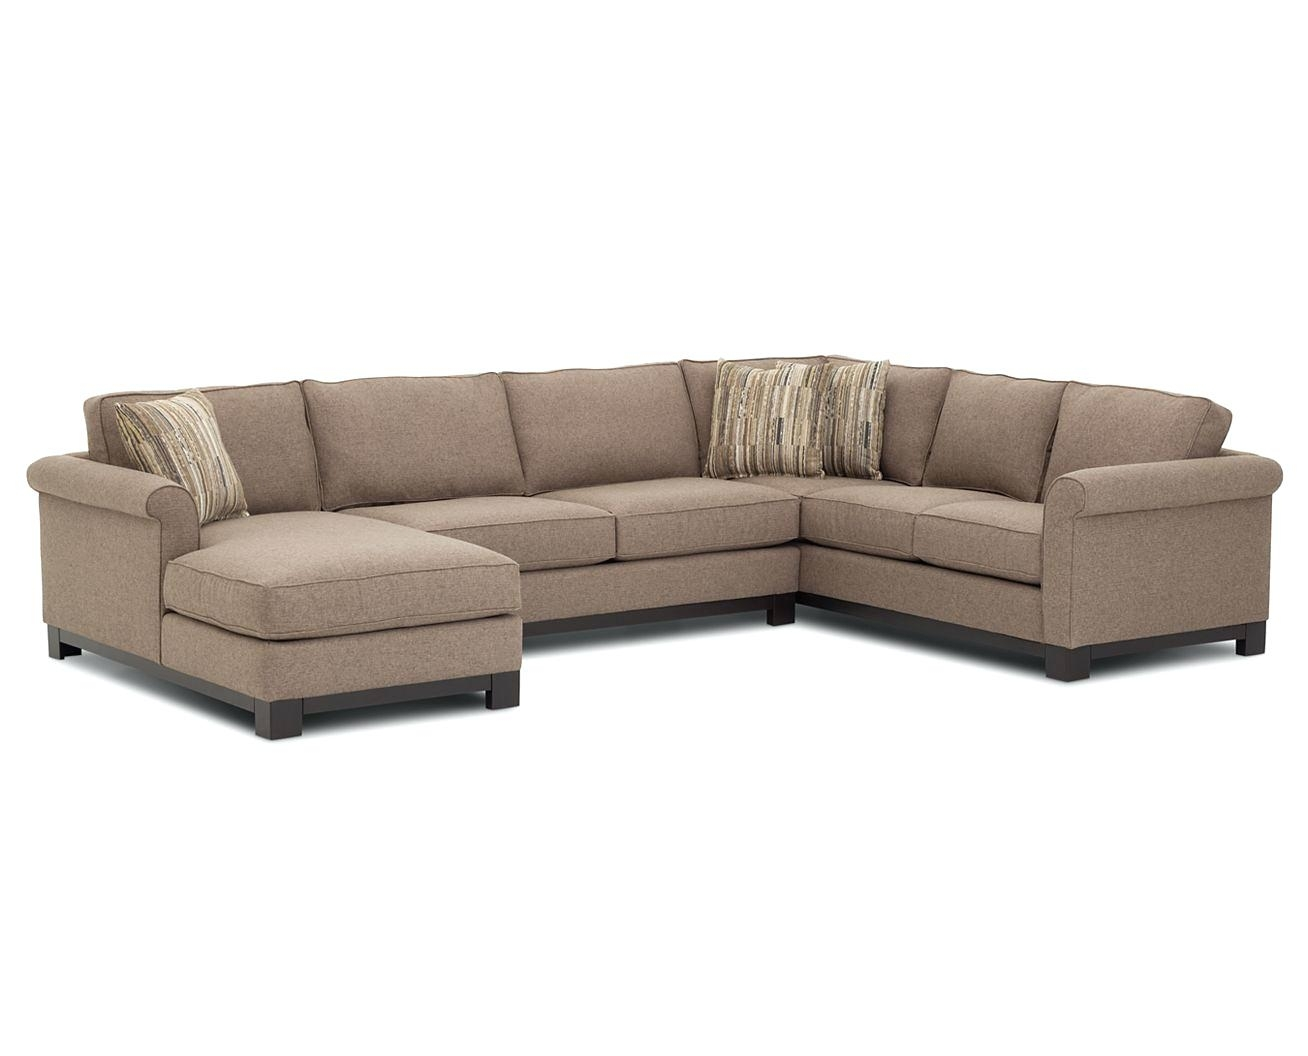 furniture row sofa modern brown and beige leather sectional with recliners 10 ideas of sofas